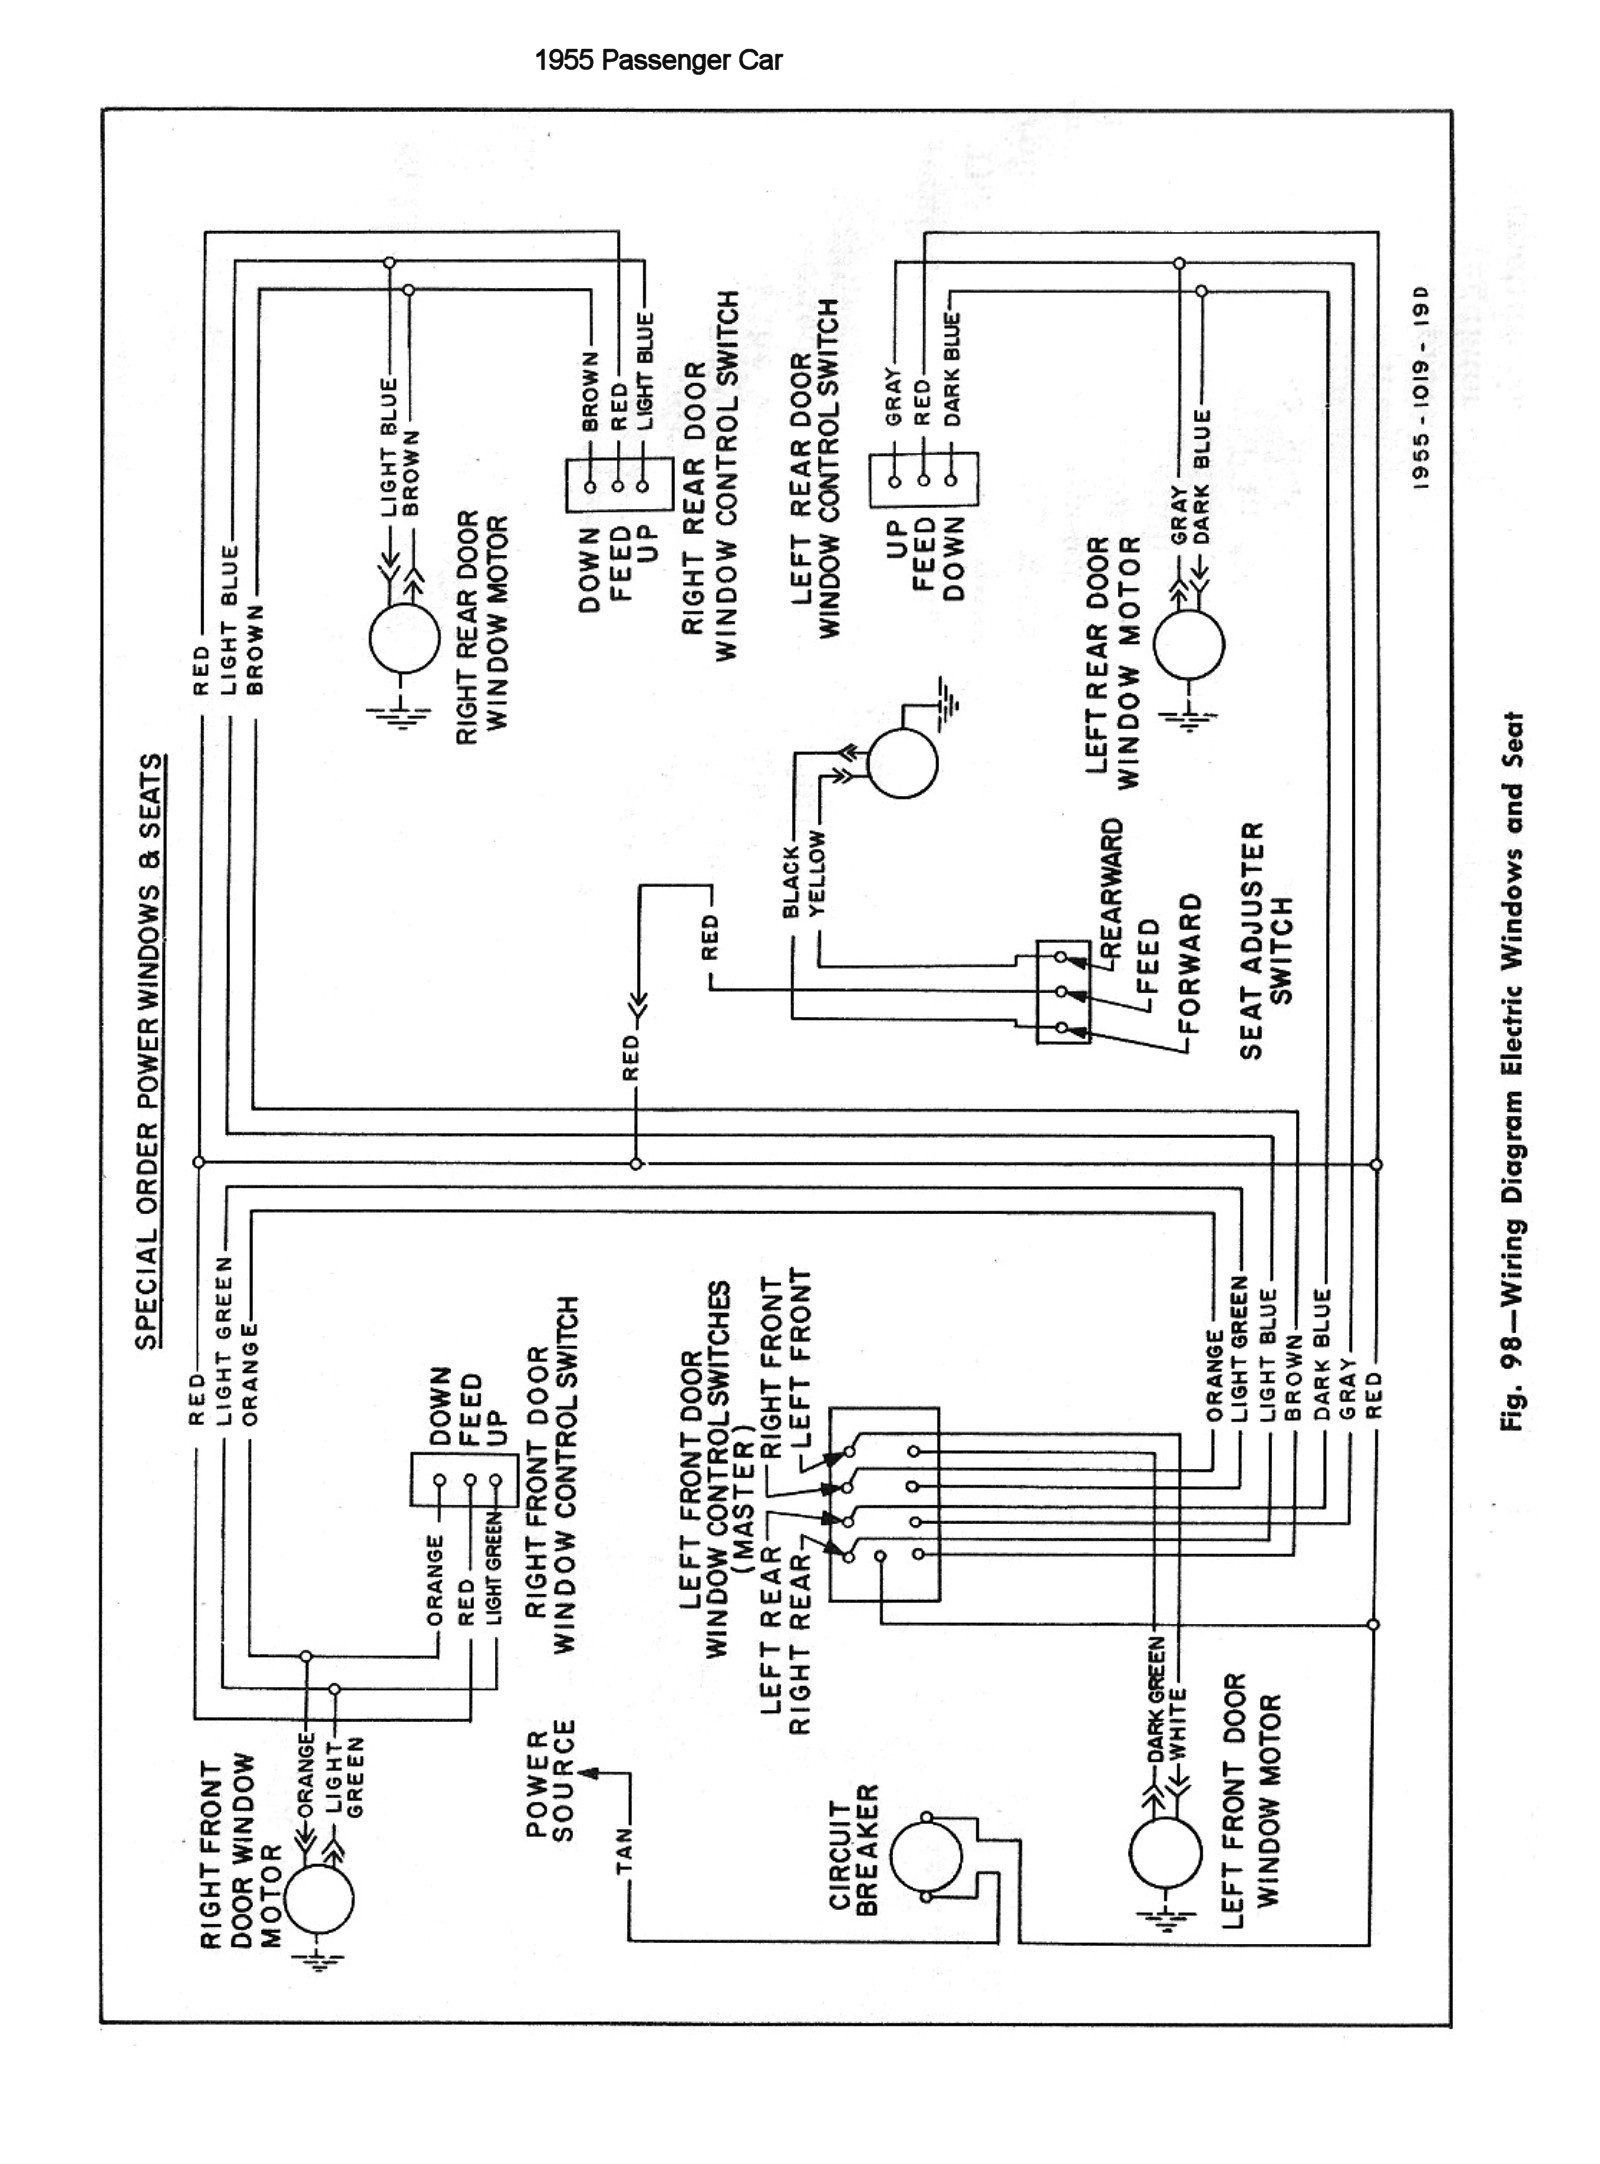 small resolution of 1955 chevrolet wiring diagram wiring diagram for you 55 chevy pickup wiring diagram 55 chevy belair wiring diagram free picture